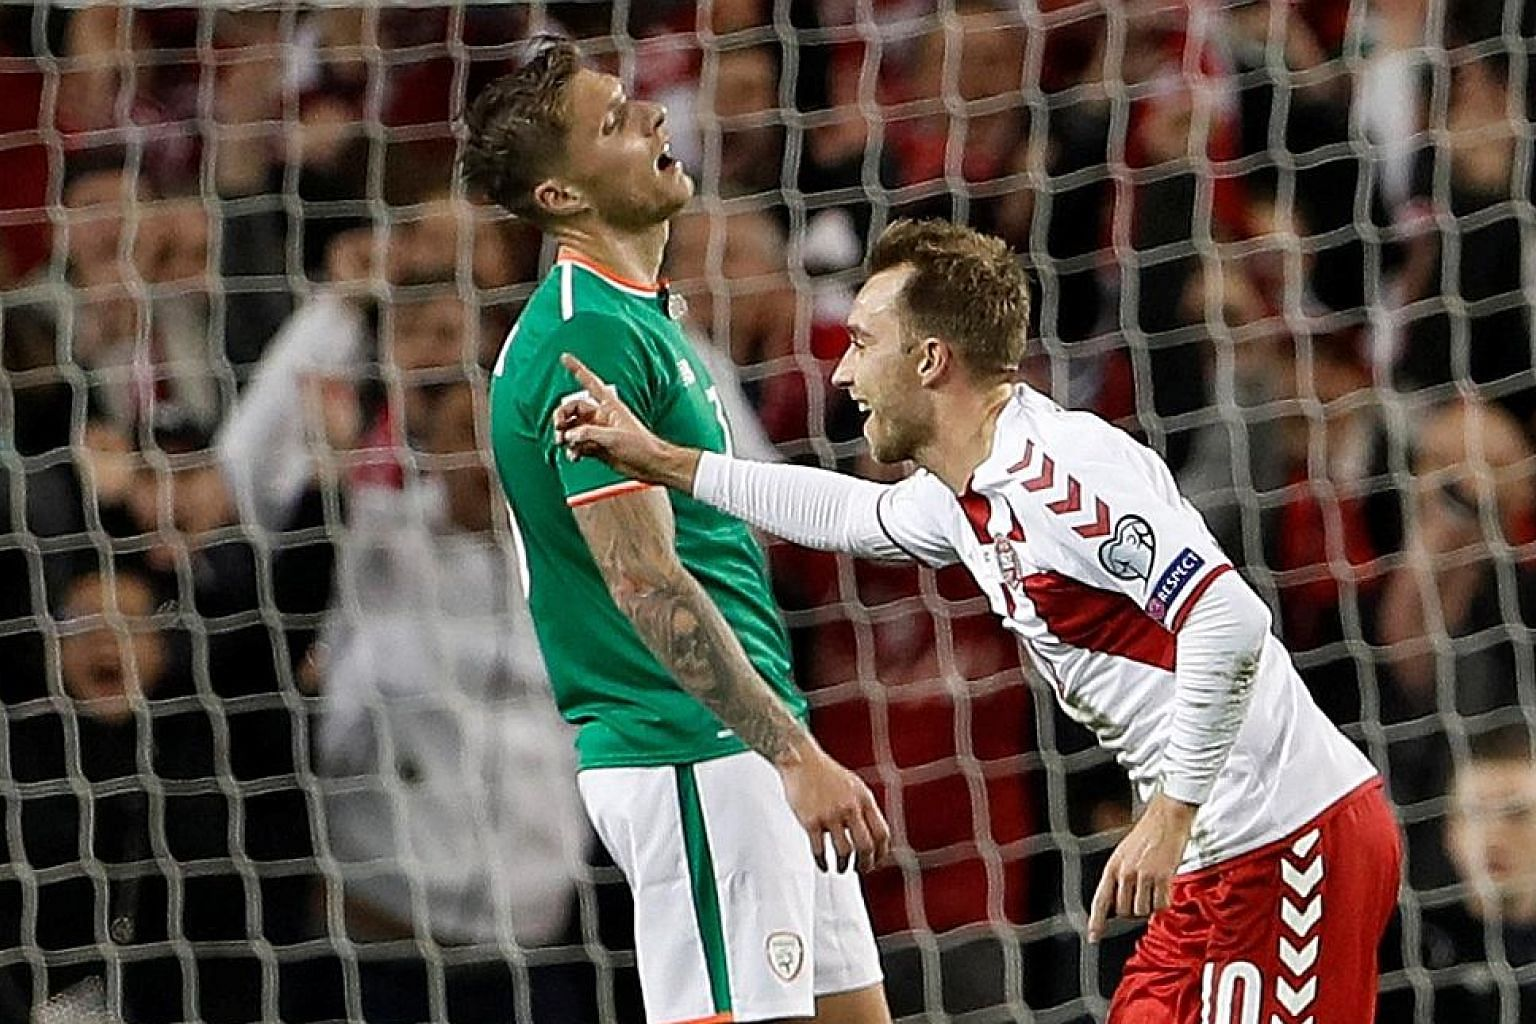 Denmark's delight is the Republic of Ireland's despair, as Christian Eriksen celebrates scoring their fourth goal to complete his hat-trick in the Danes' 5-1 victory in the World Cup play-off on Tuesday.